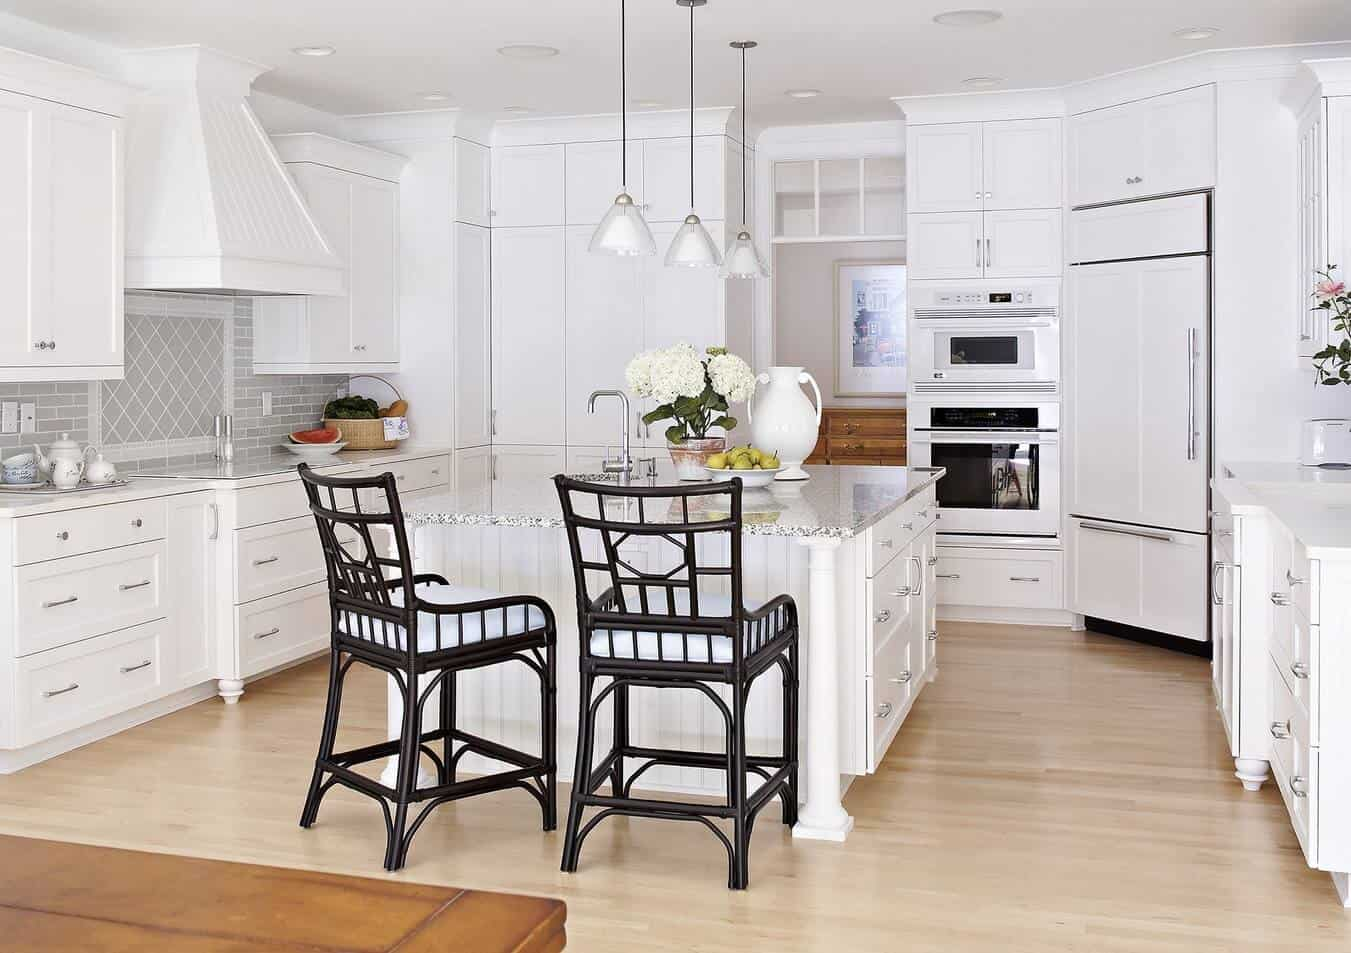 Beach style kitchen with a beadboard marble top breakfast island paired with black wooden chairs and surrounded with white appliances and cabinetry.